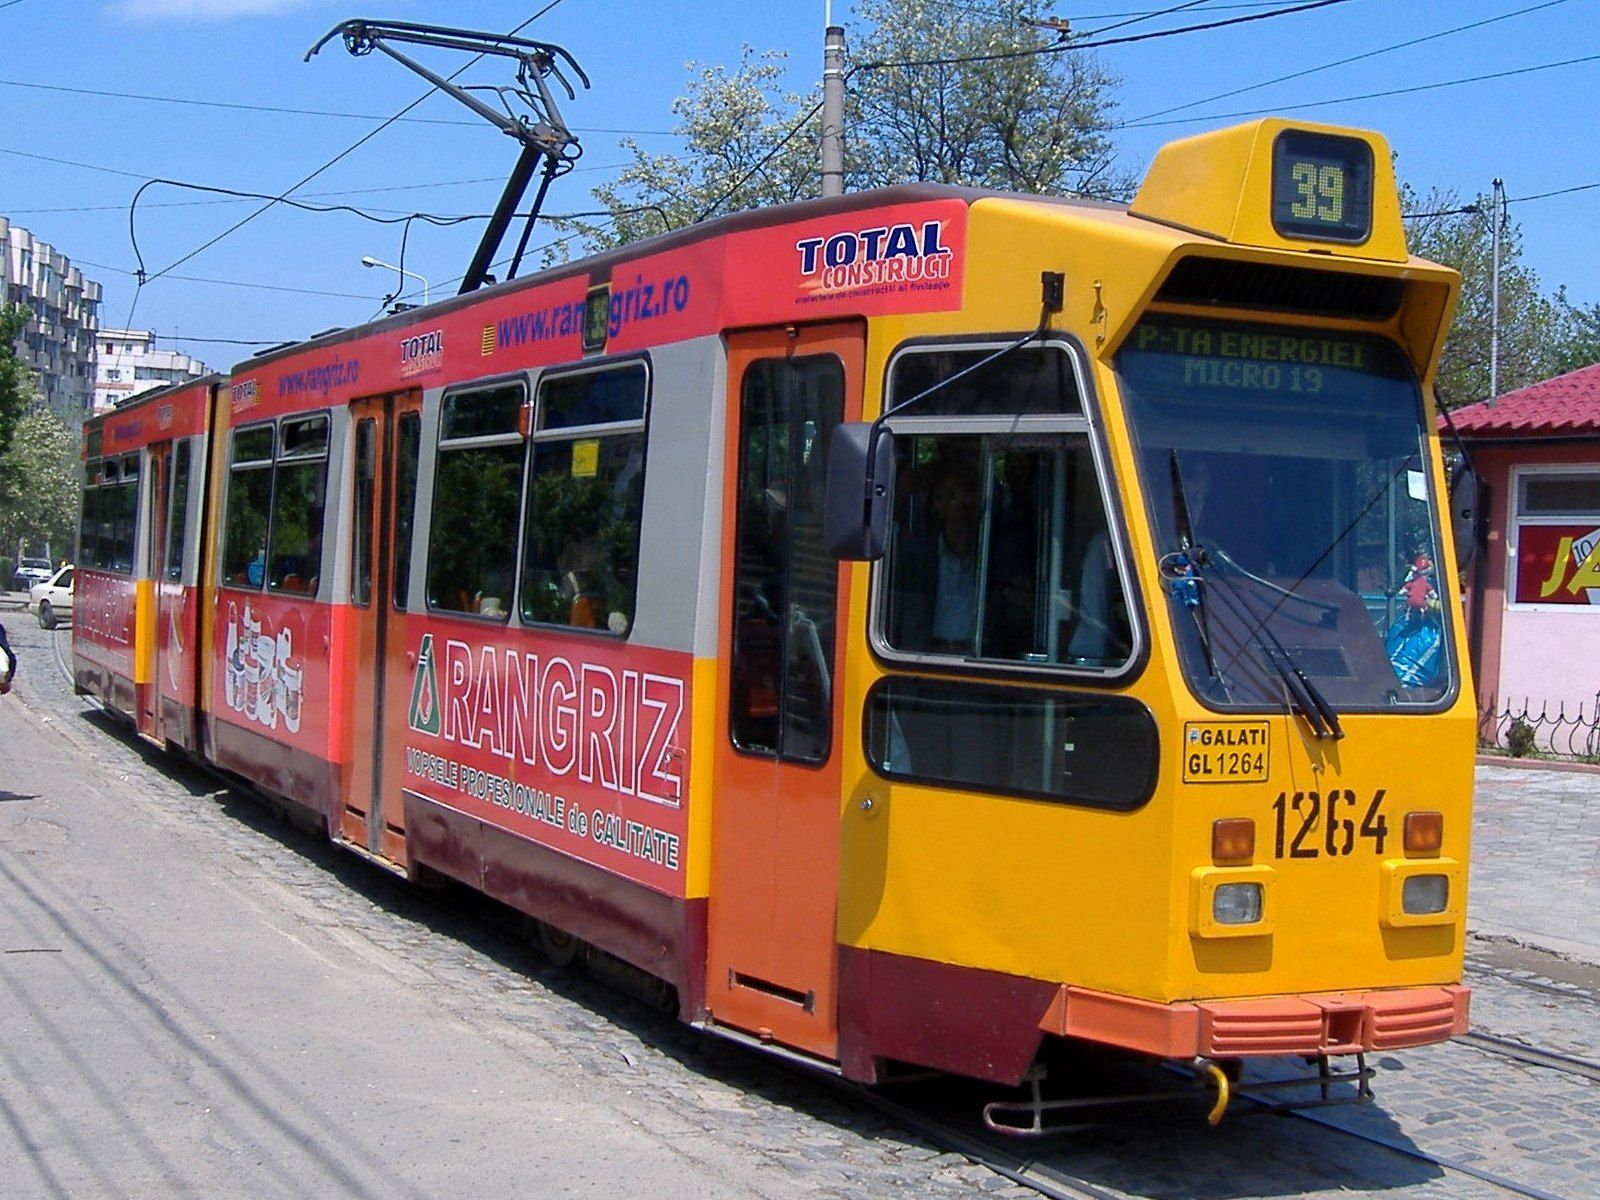 1264 comes from: Rotterdam